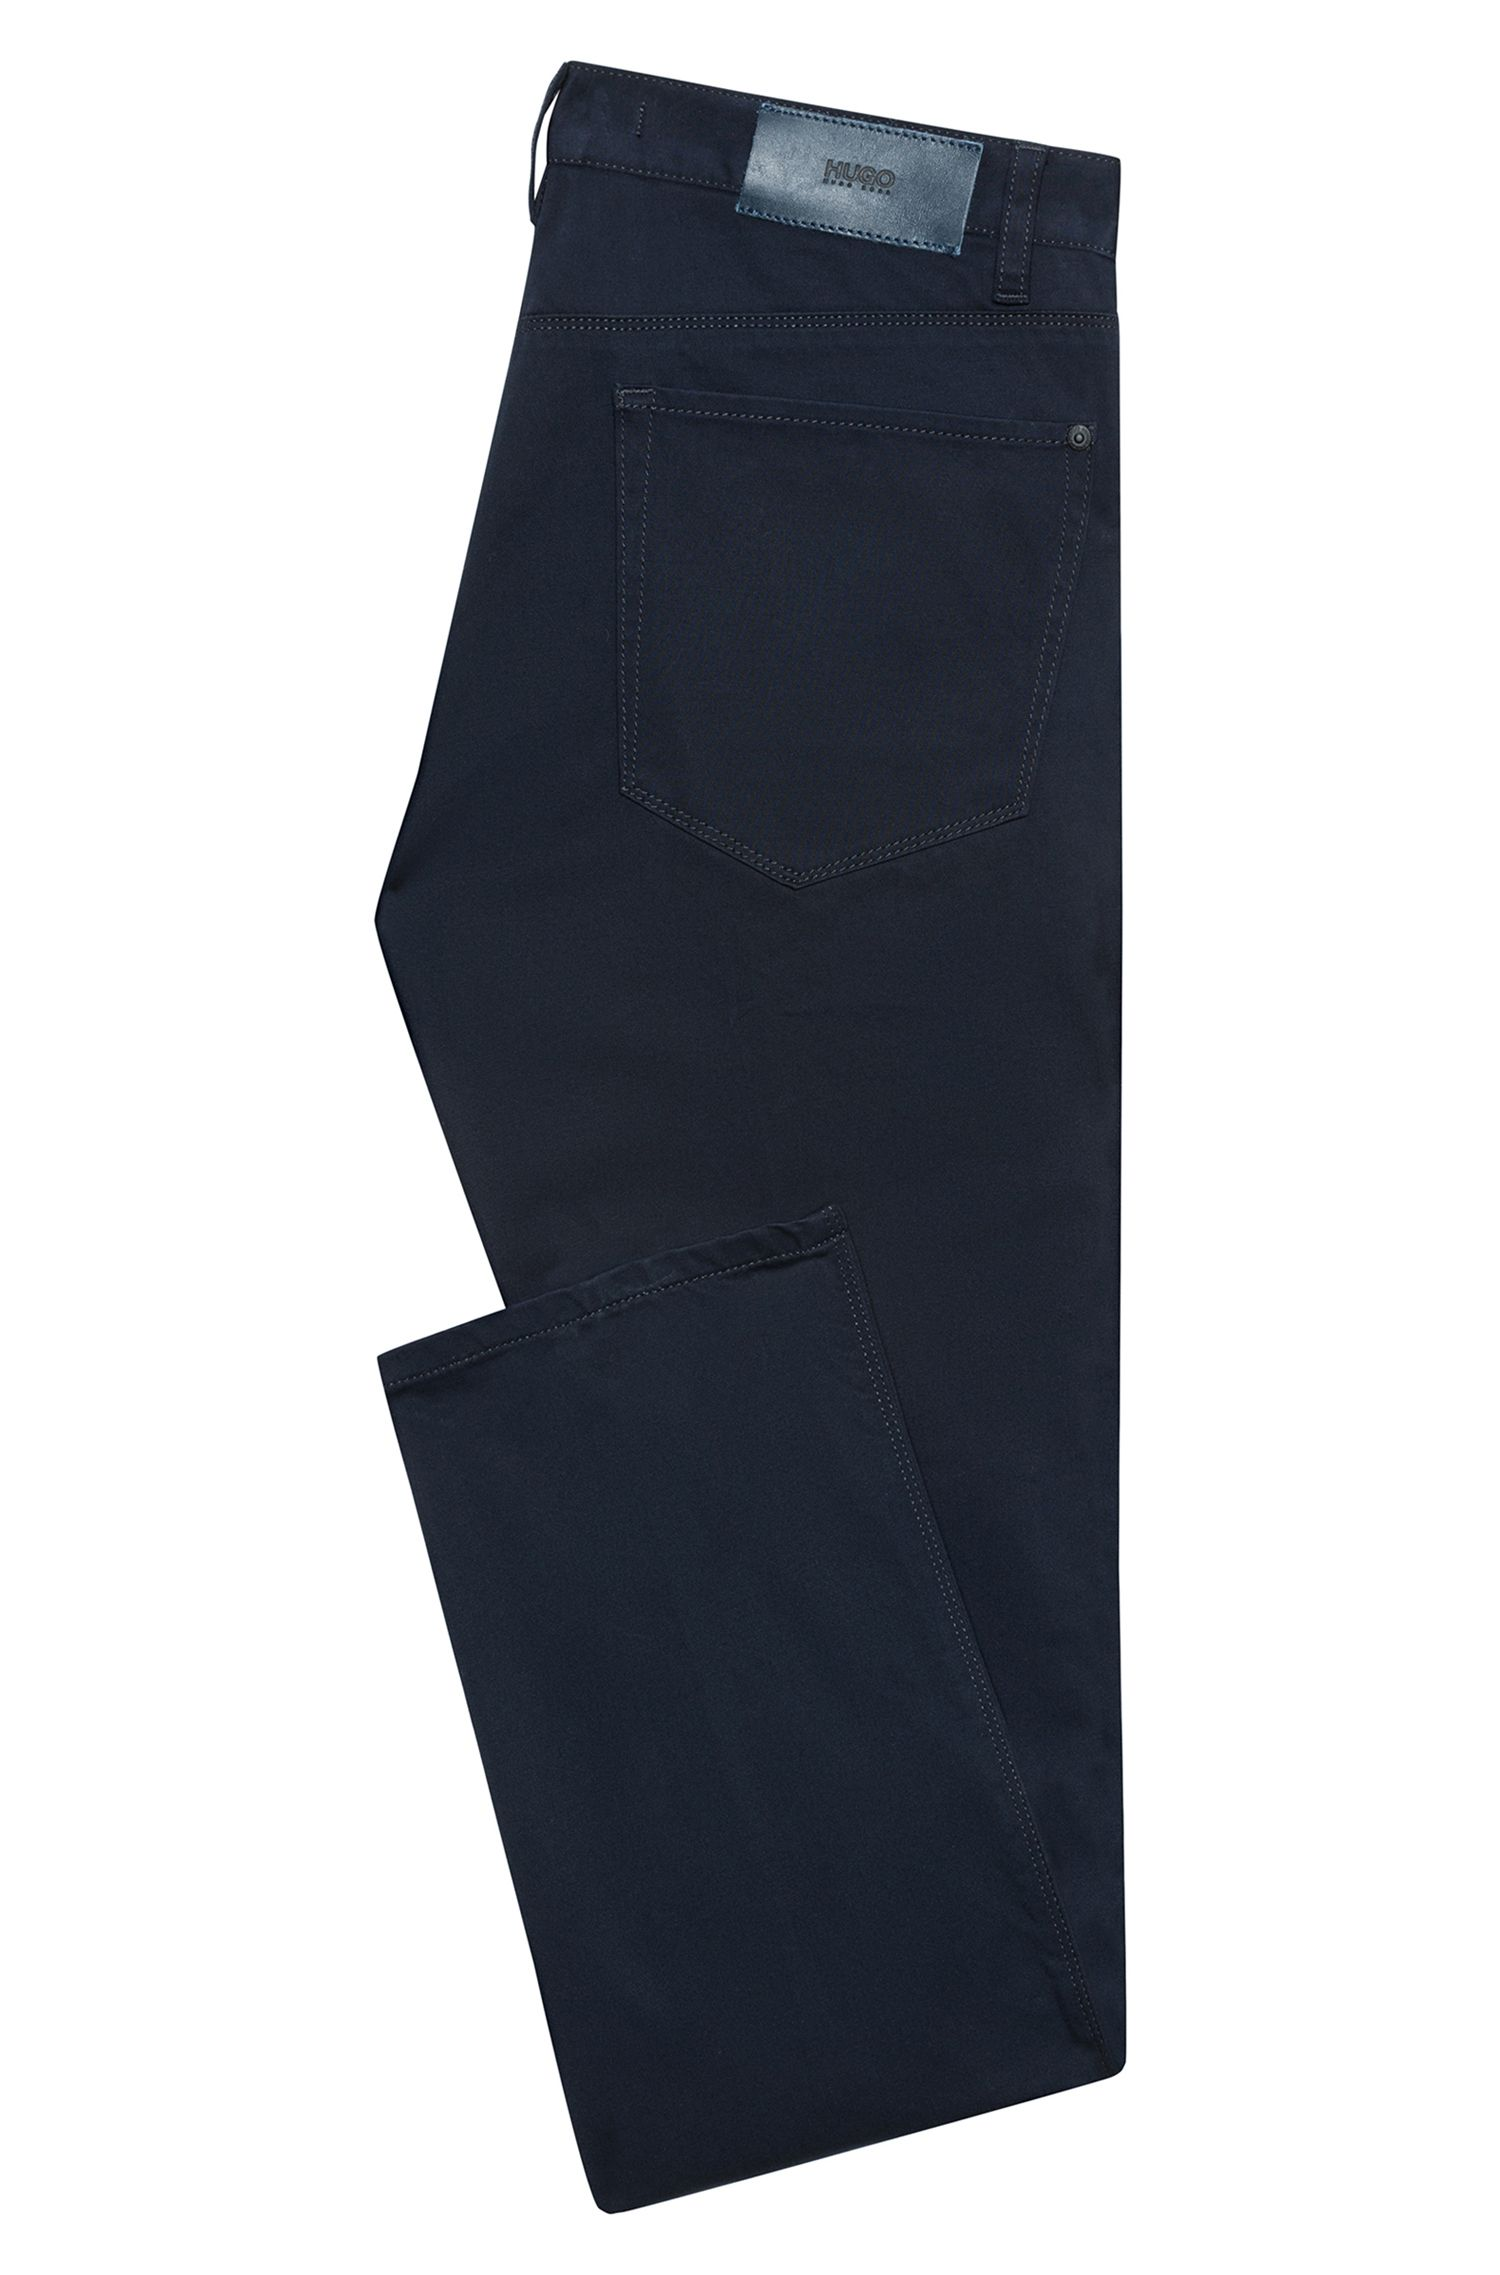 Slim-Fit Jeans aus Stretch-Denim mit kontrastfarbenen Paspeln, Dunkelblau